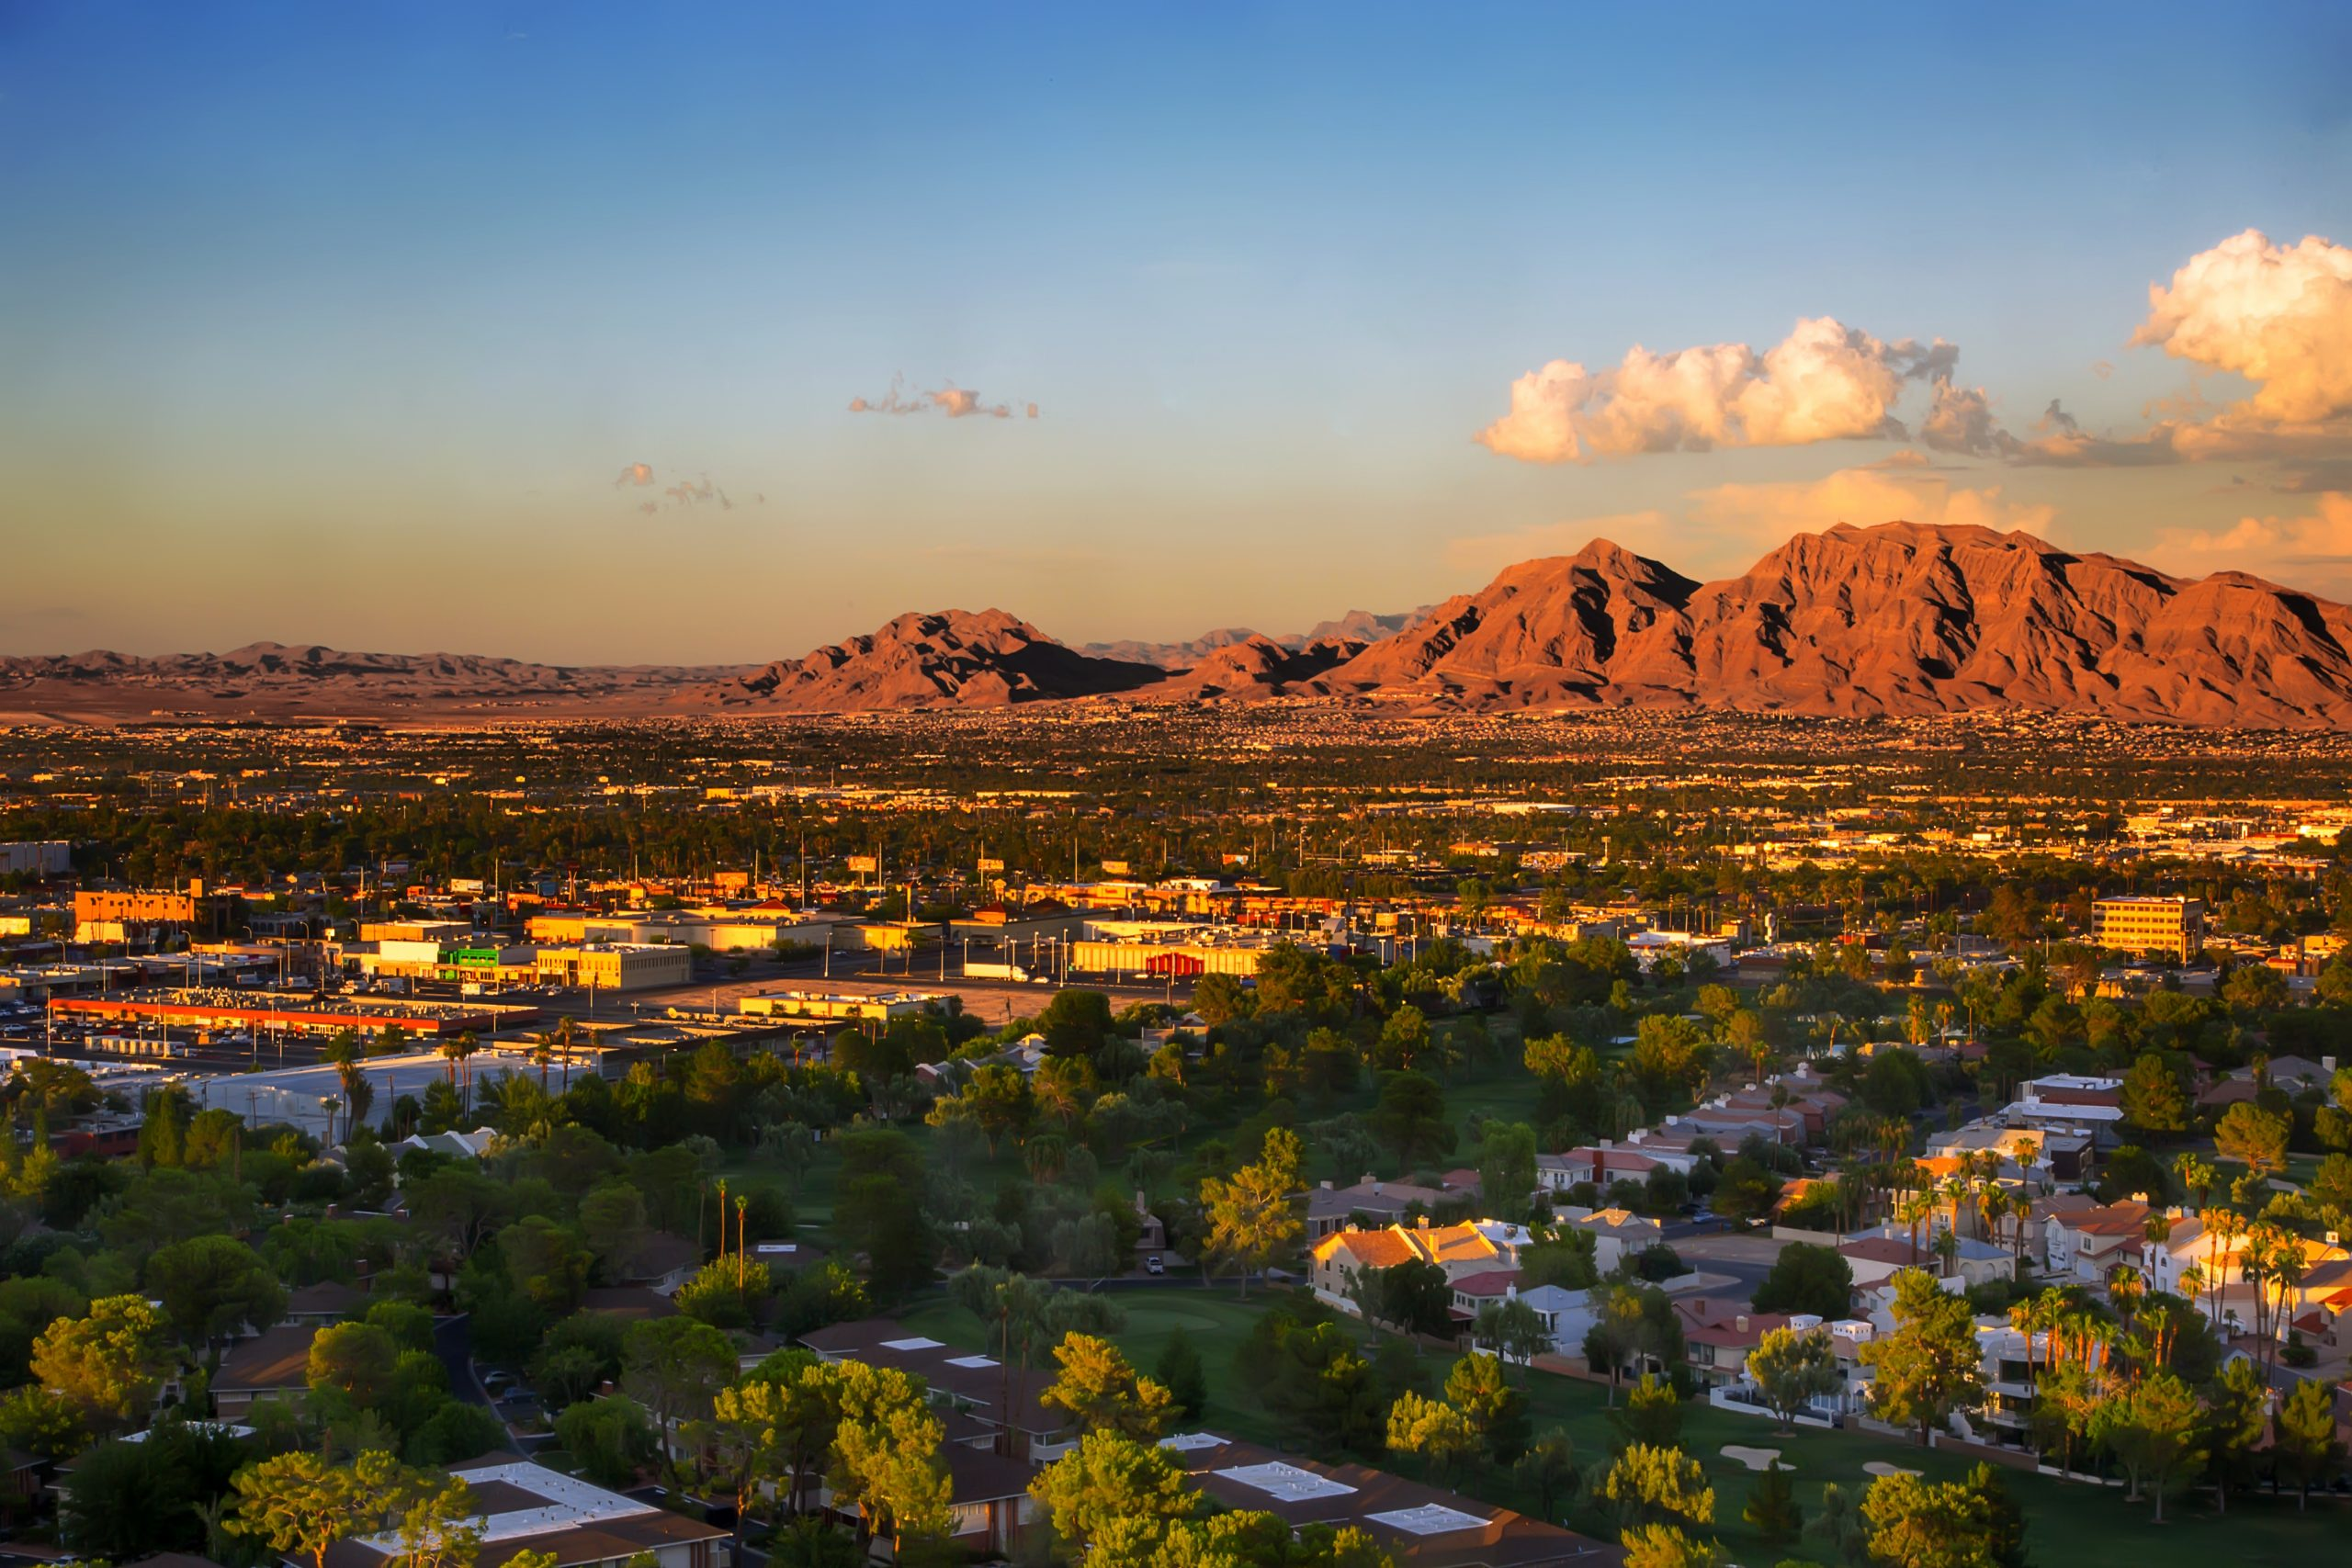 Aerial photo of single family neighborhood in Las Vegas with mountains in the background